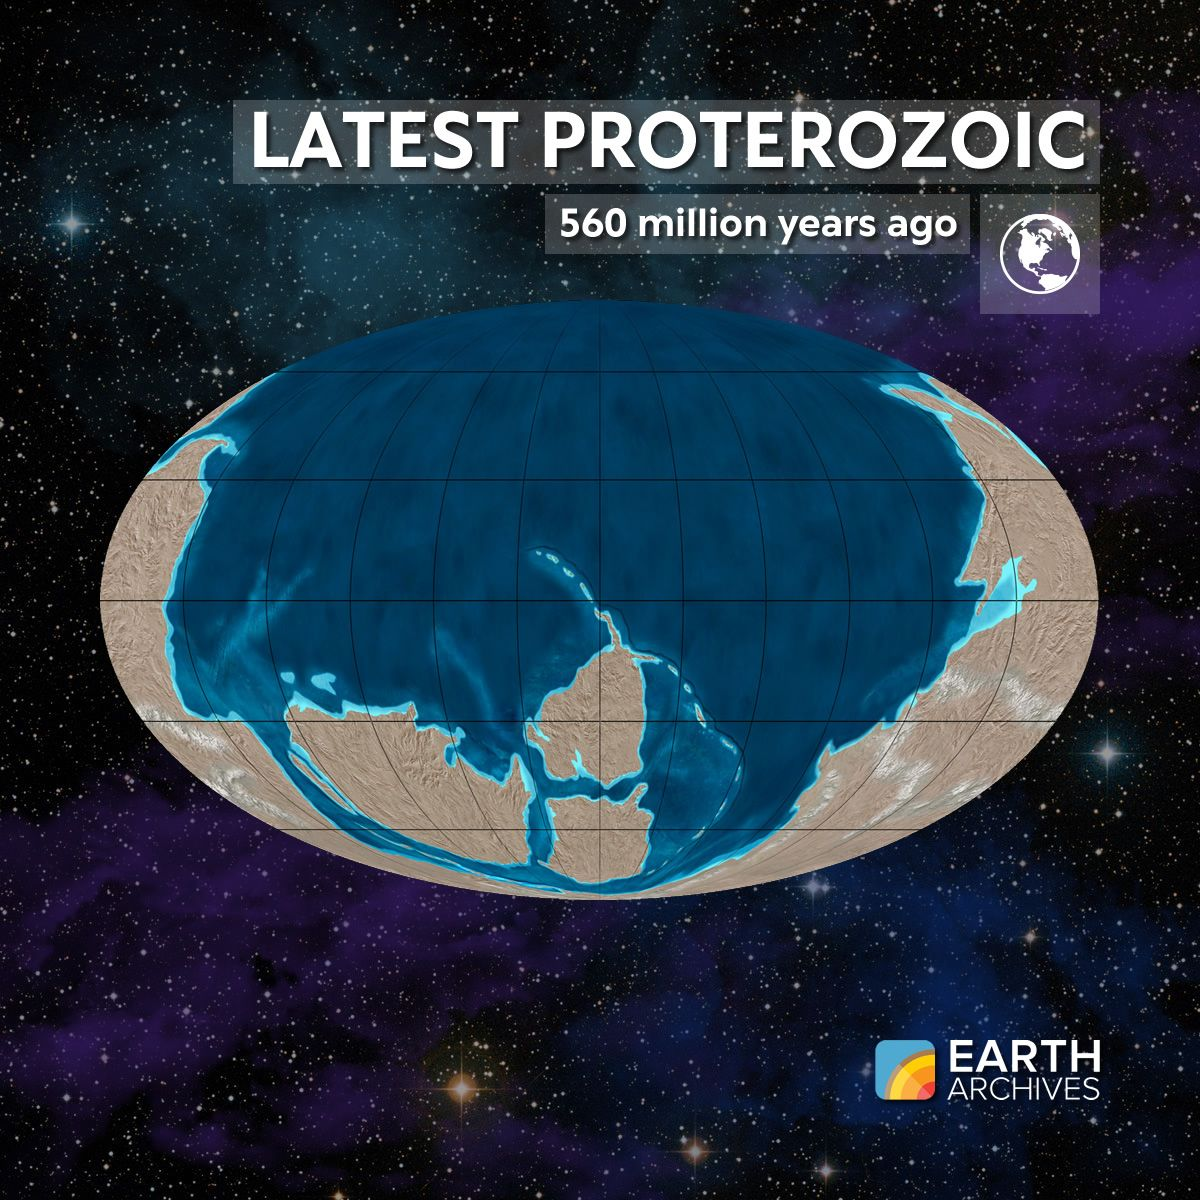 By The Latest Proterozoic Some 560 Million Years Ago